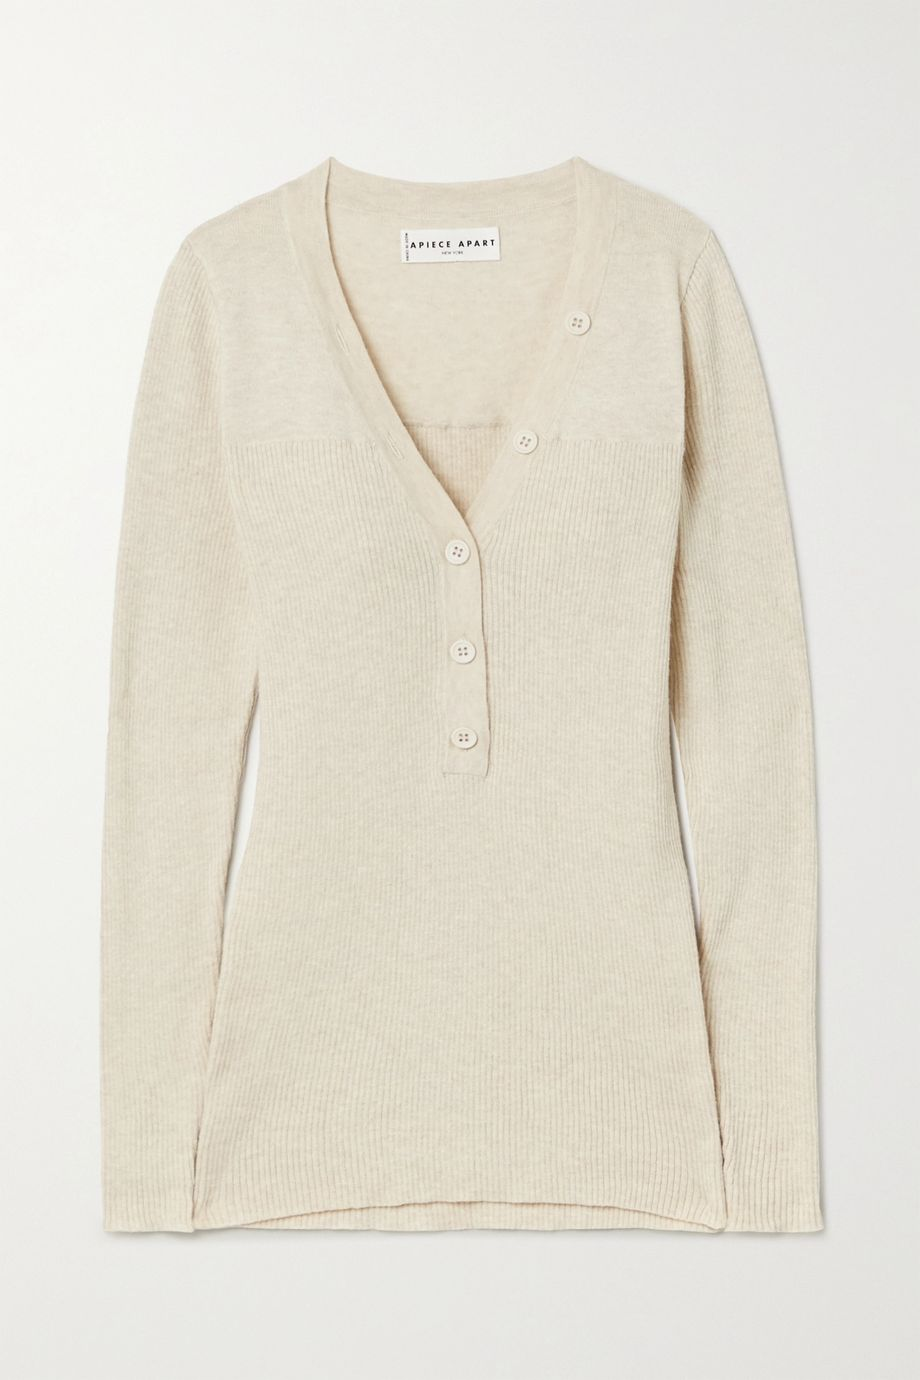 APIECE APART Rio ribbed cotton and cashmere-blend sweater